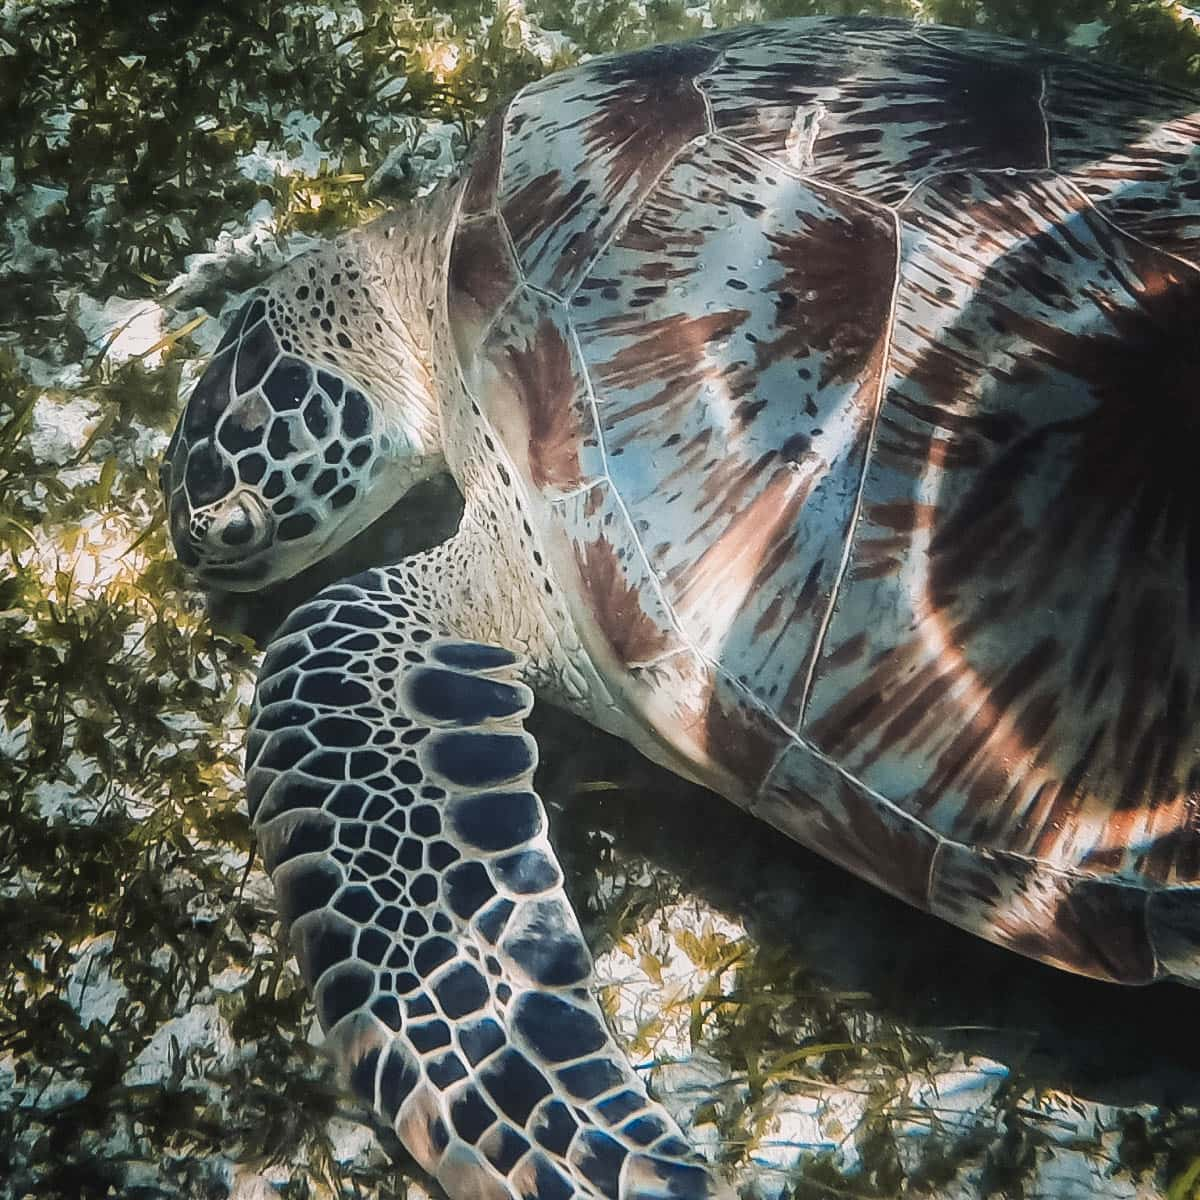 Sea turtle in Asia